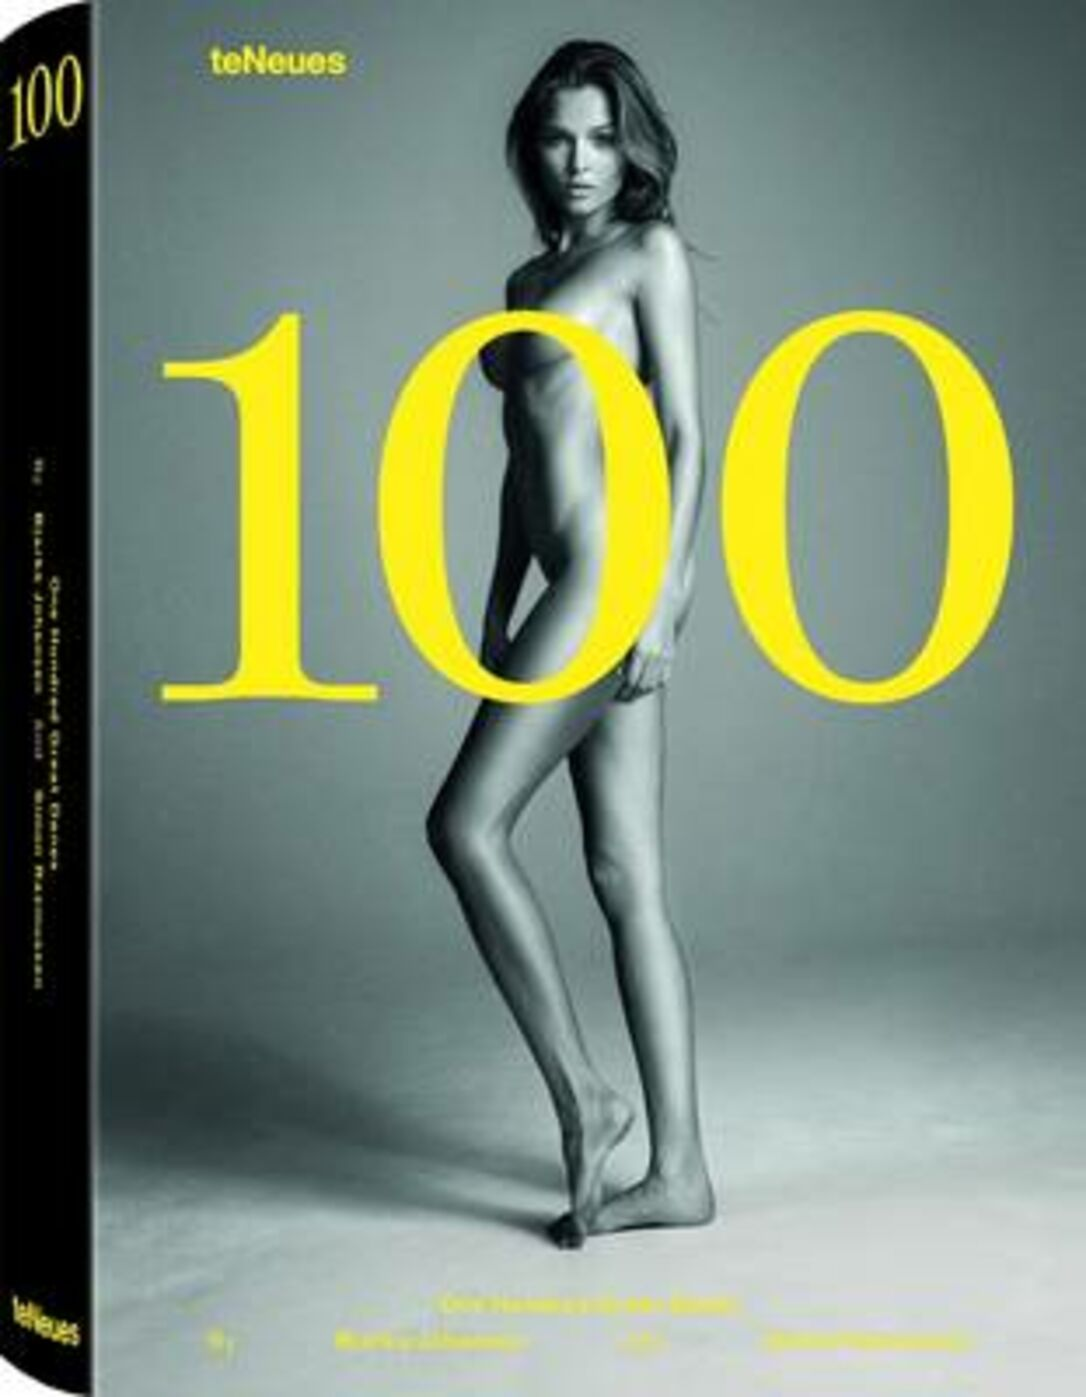 100. One hundred great danes